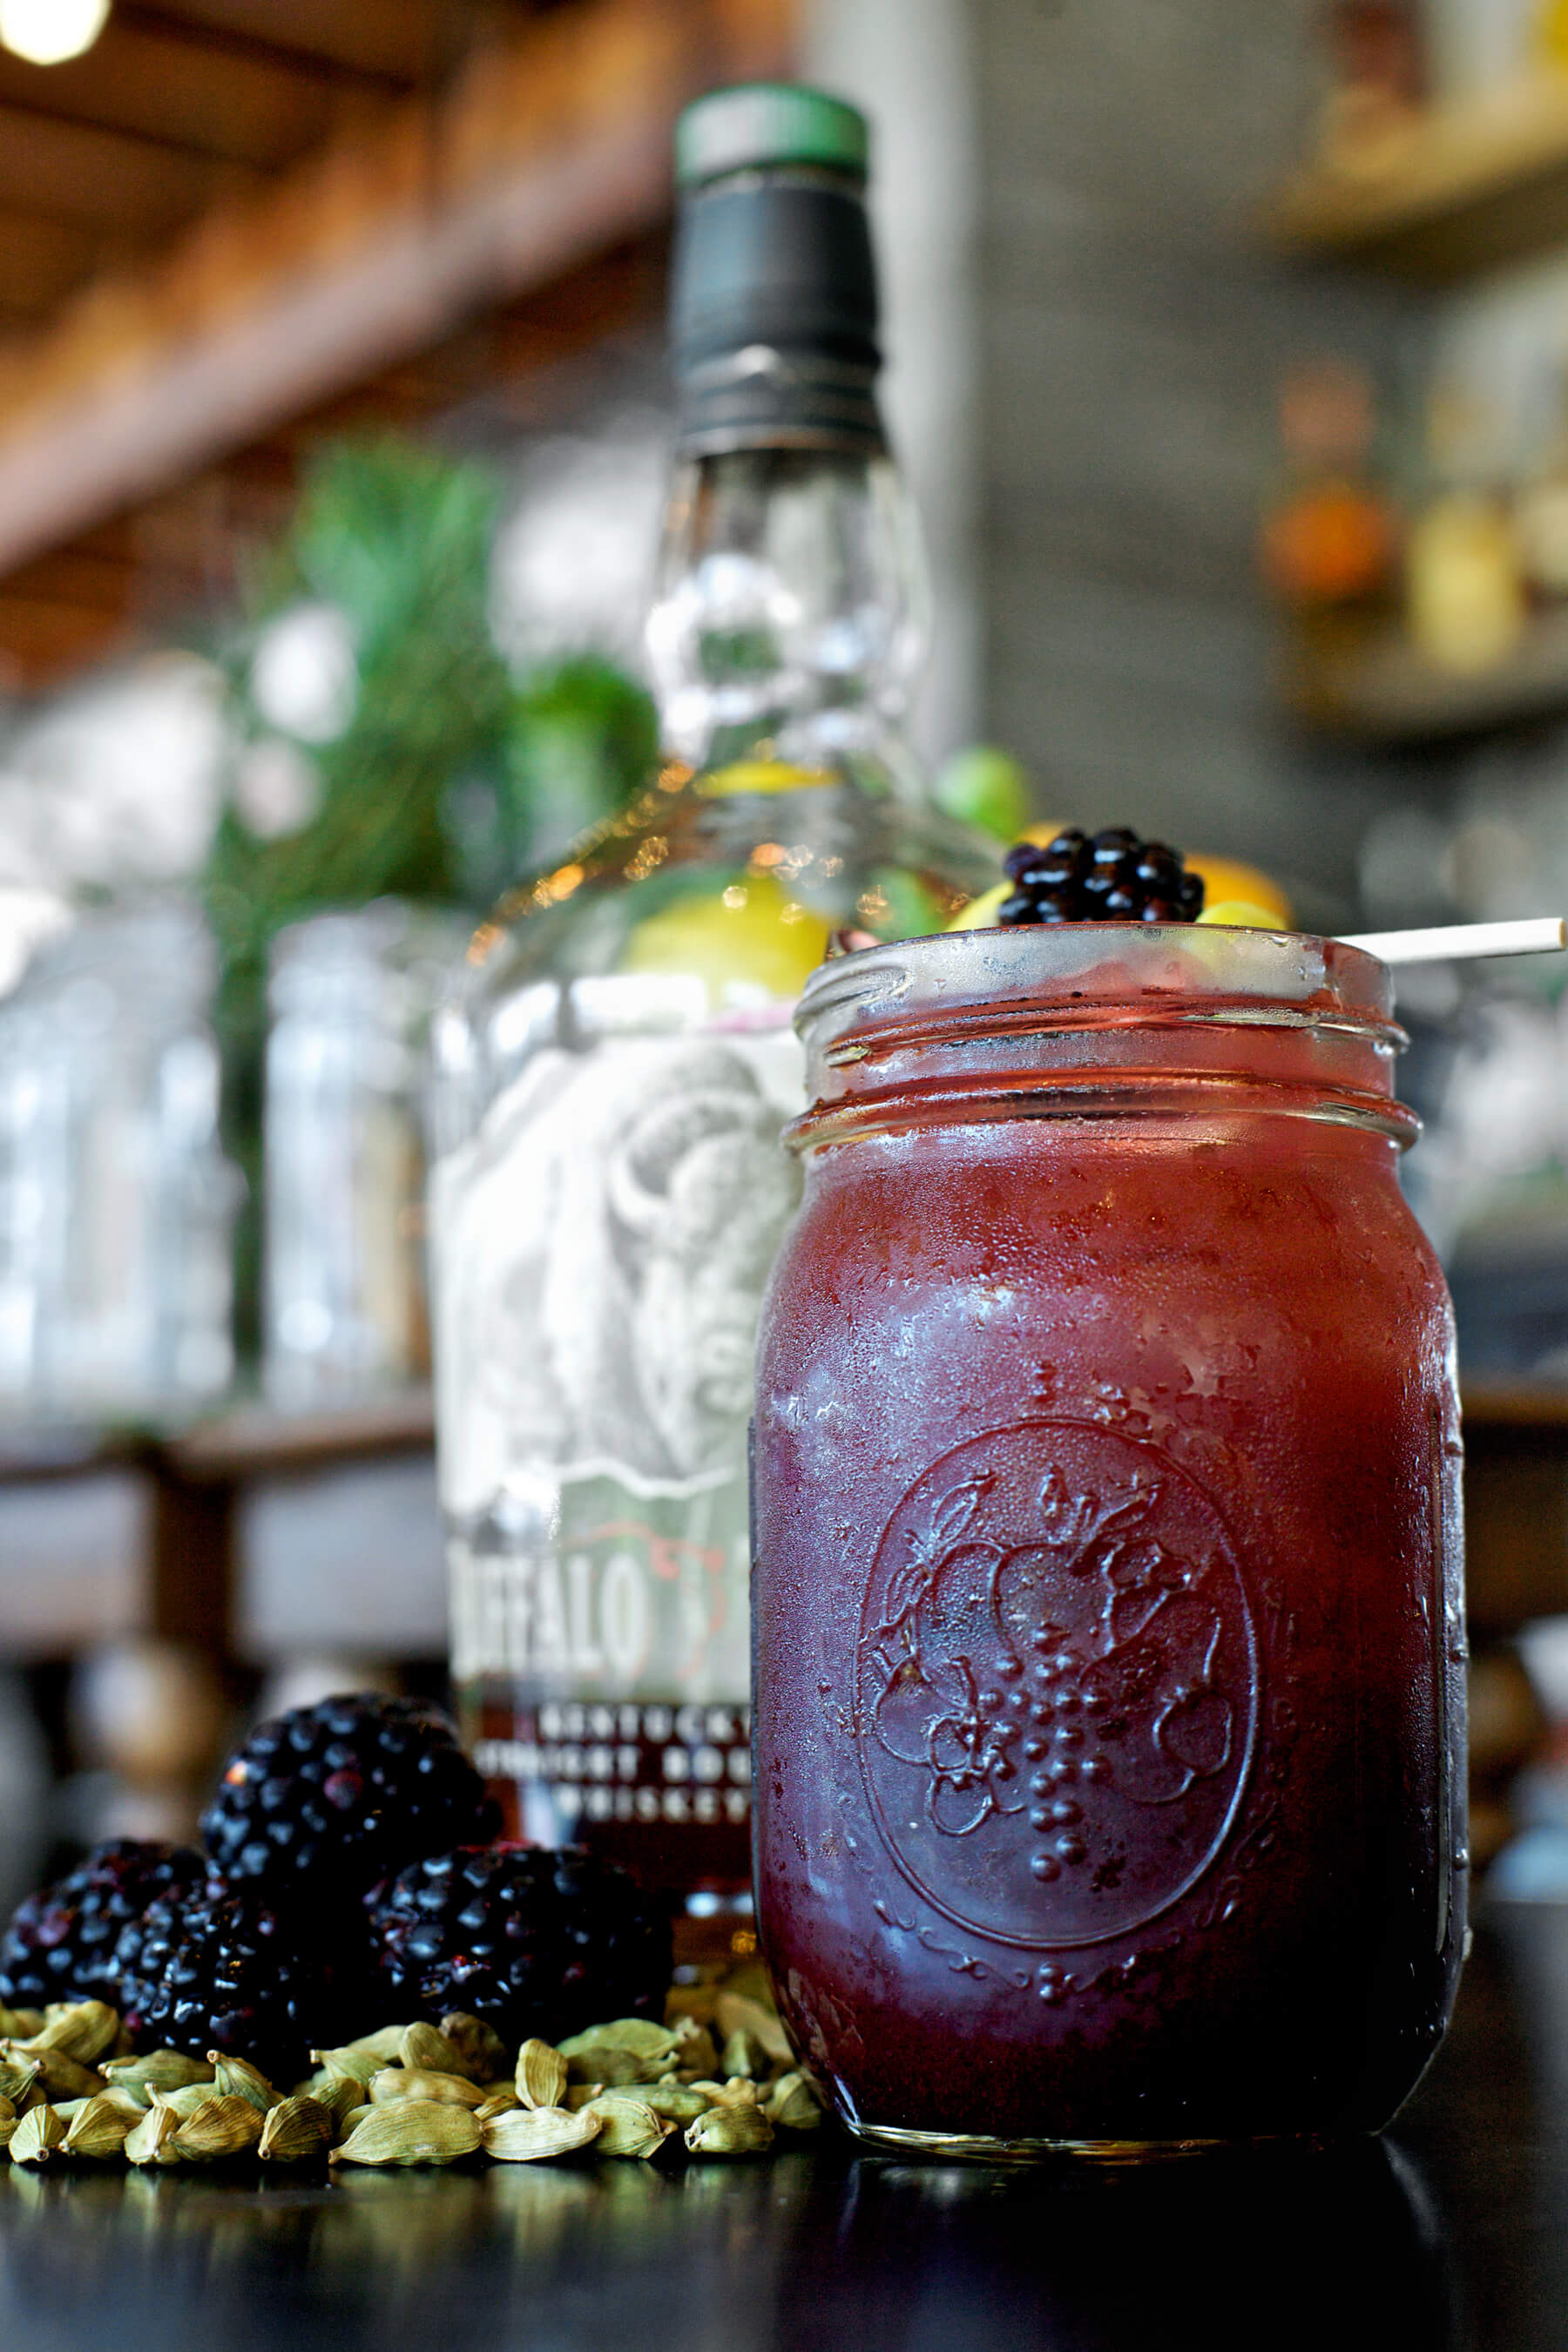 Yardbird Southern Table & Bar Blackberry Bourbon Lemonade punch - Memorial Day 2017 punch bowl recipes